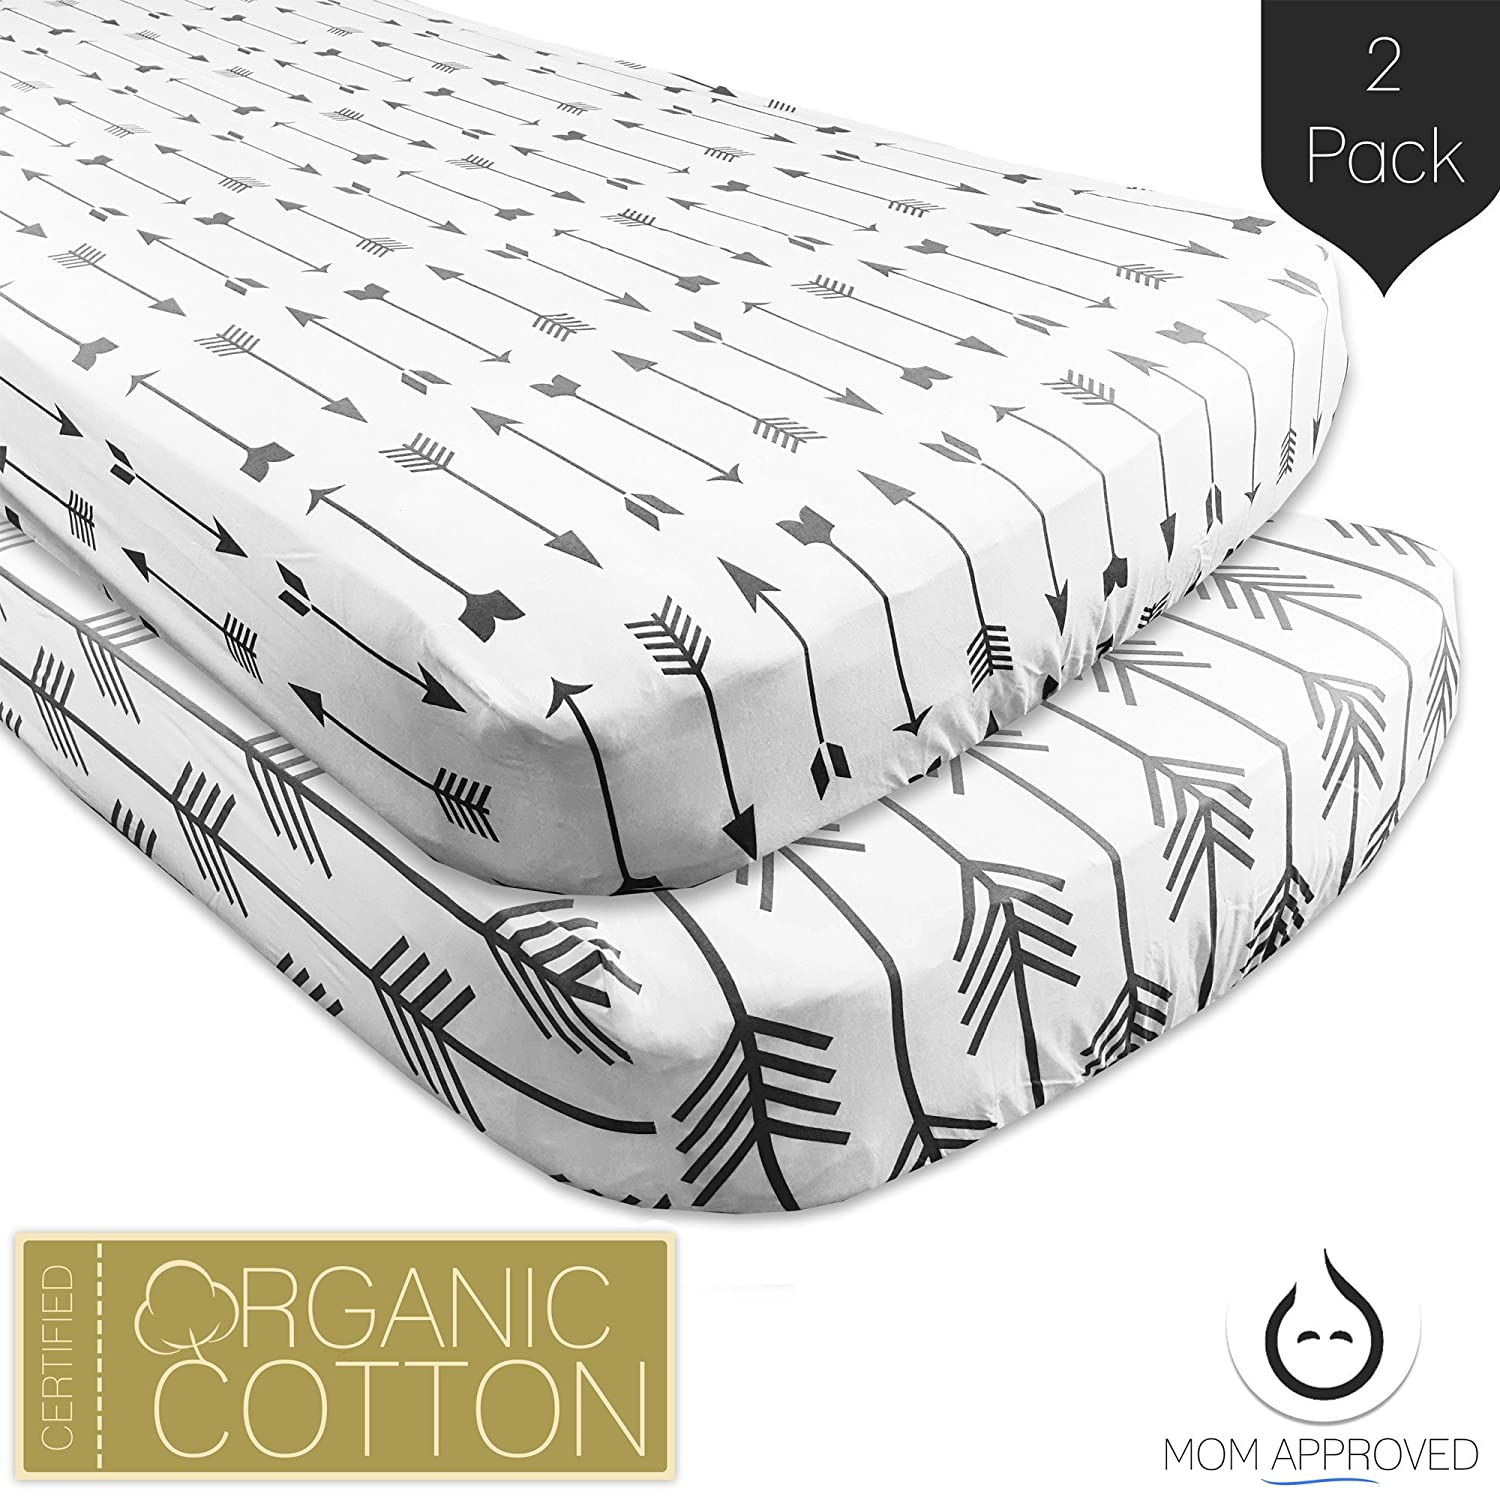 Kaydee Baby Certified Organic Flannel Cotton Fitted Crib Sheets - Set of 2 - Variety of Options Available (Grey Arrows)